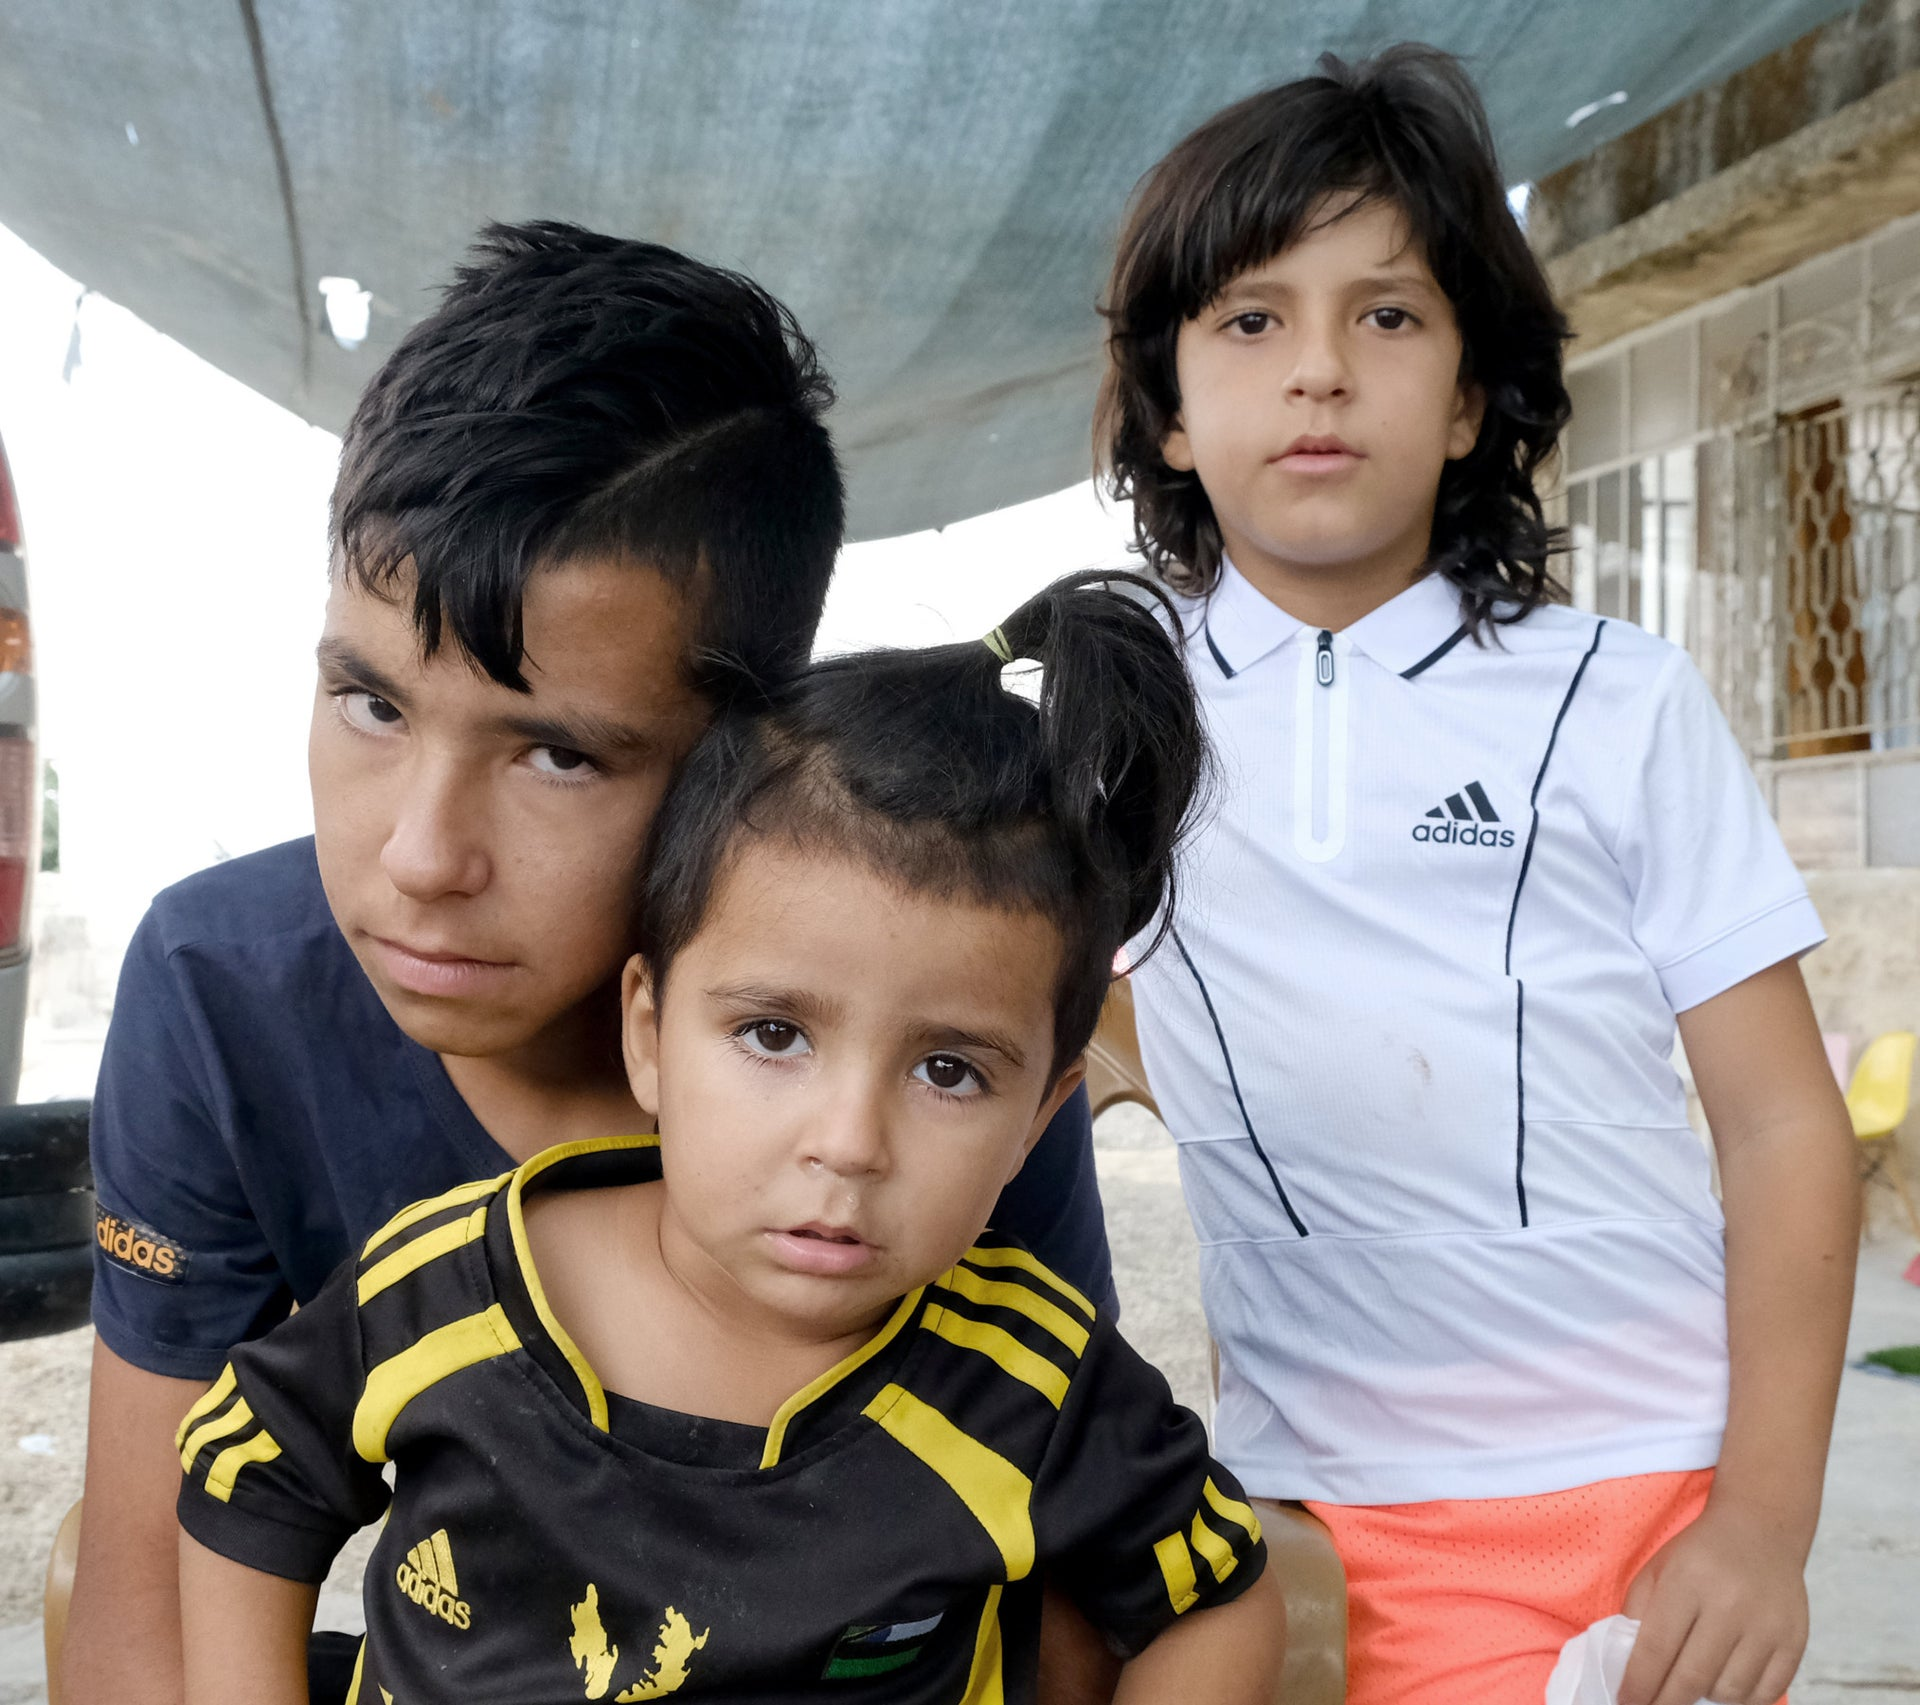 Three of Raed Jidallah's four children: Youssef, Mohammed and Amir.